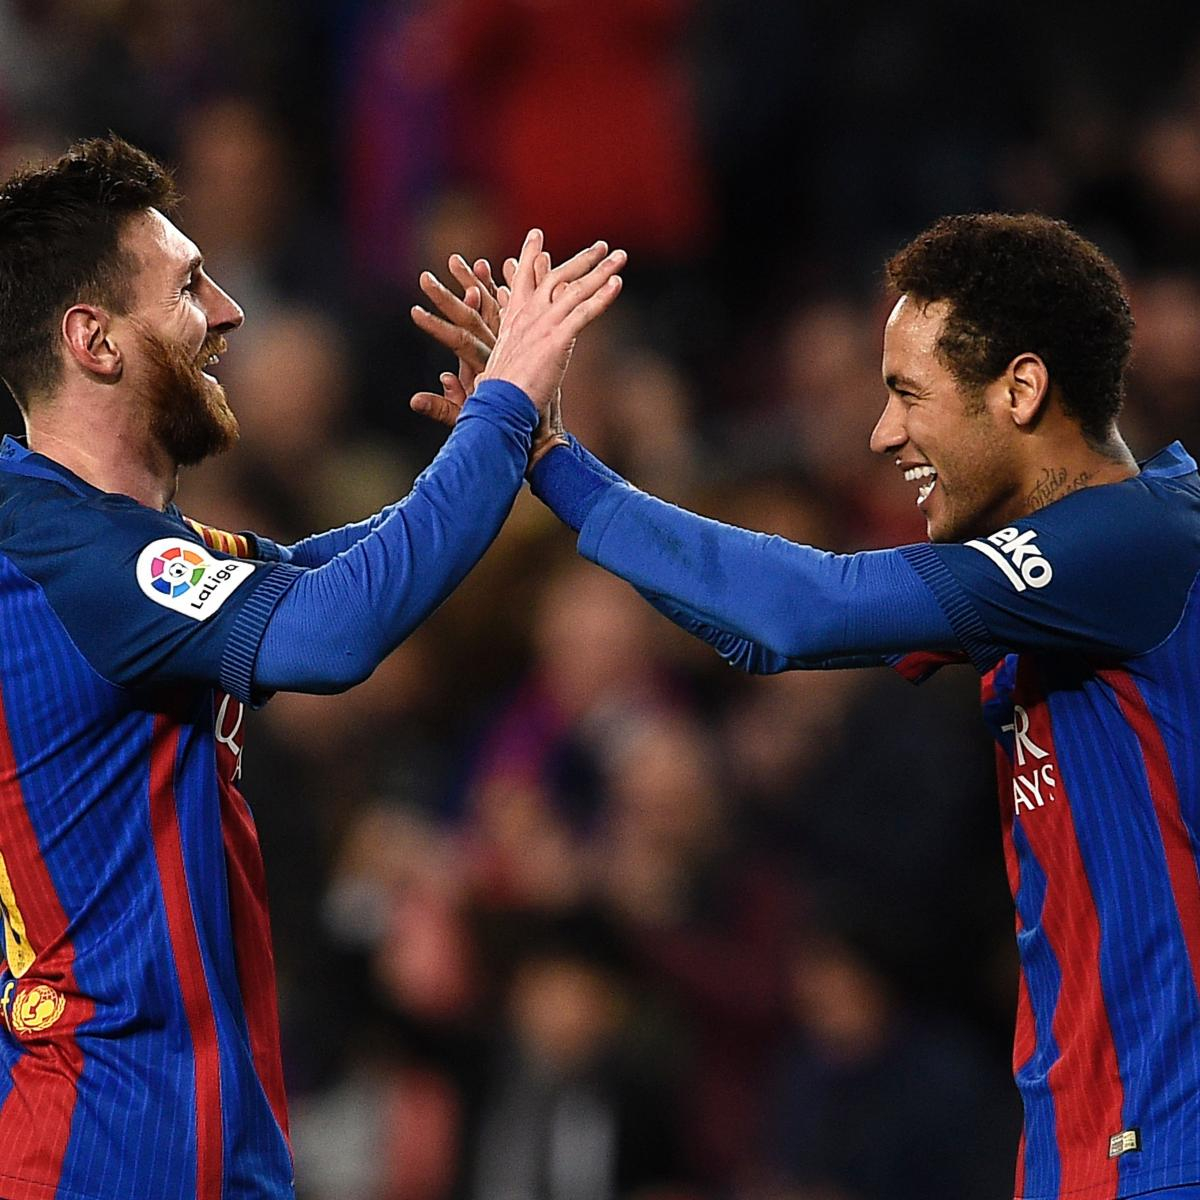 Barcelona Vs Celta Vigo Goals Today: Barcelona Vs. Celta Vigo: Score And Reaction From 2017 La